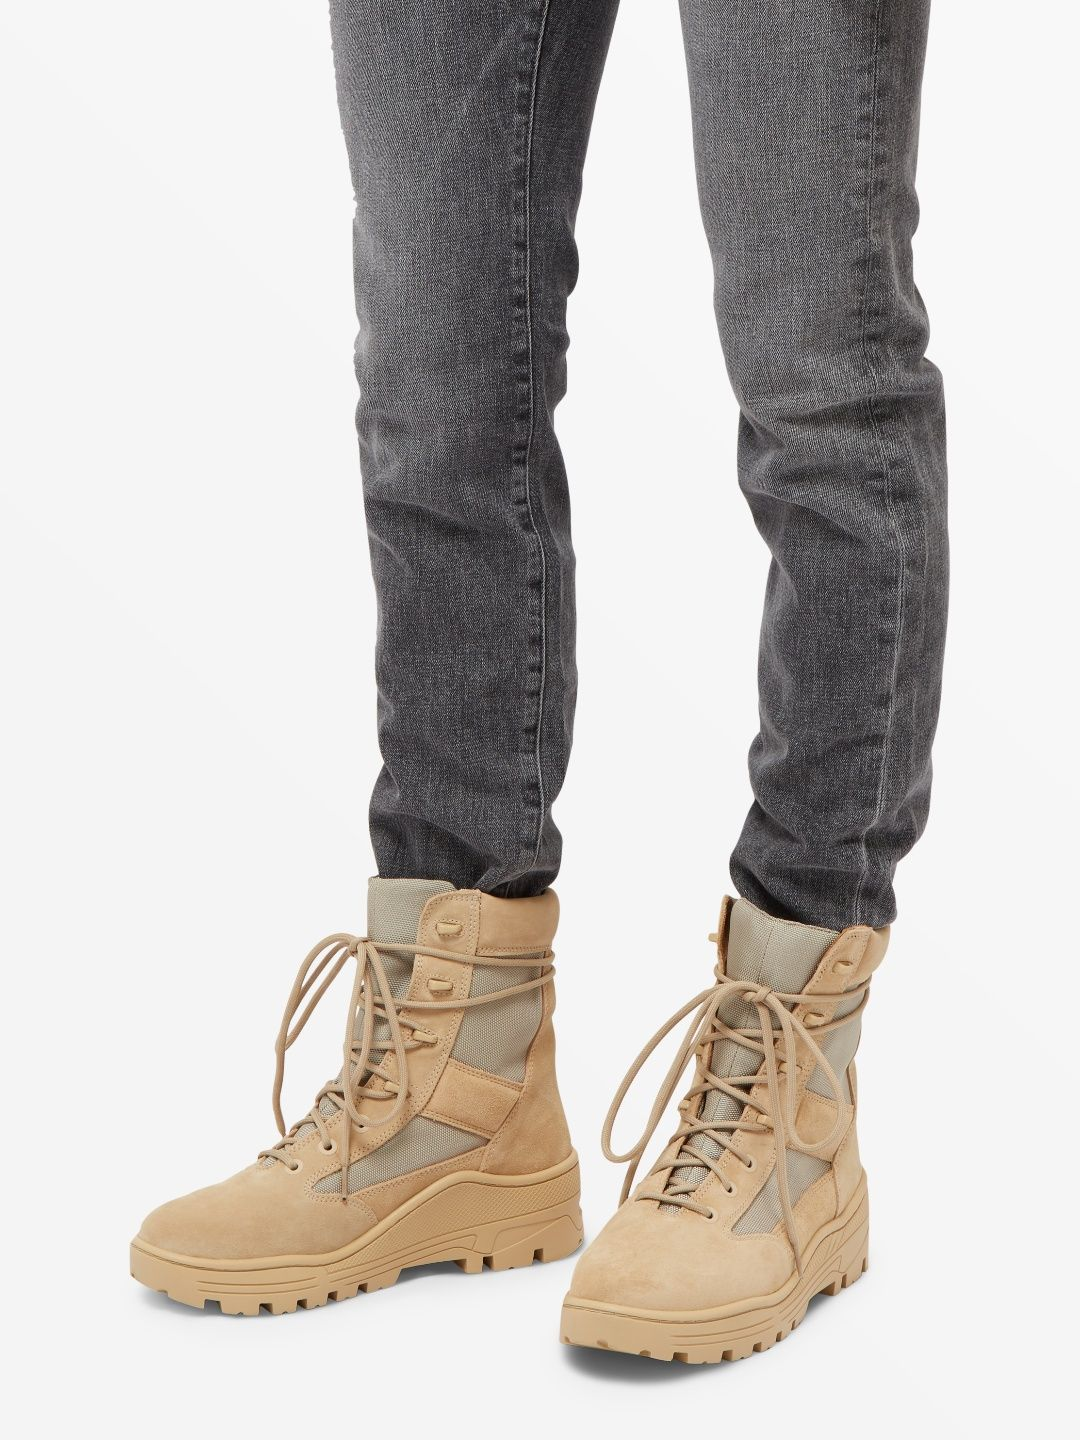 09bbabaf56e6d Yeezy Season 4 Sand Combat Boots Image 4